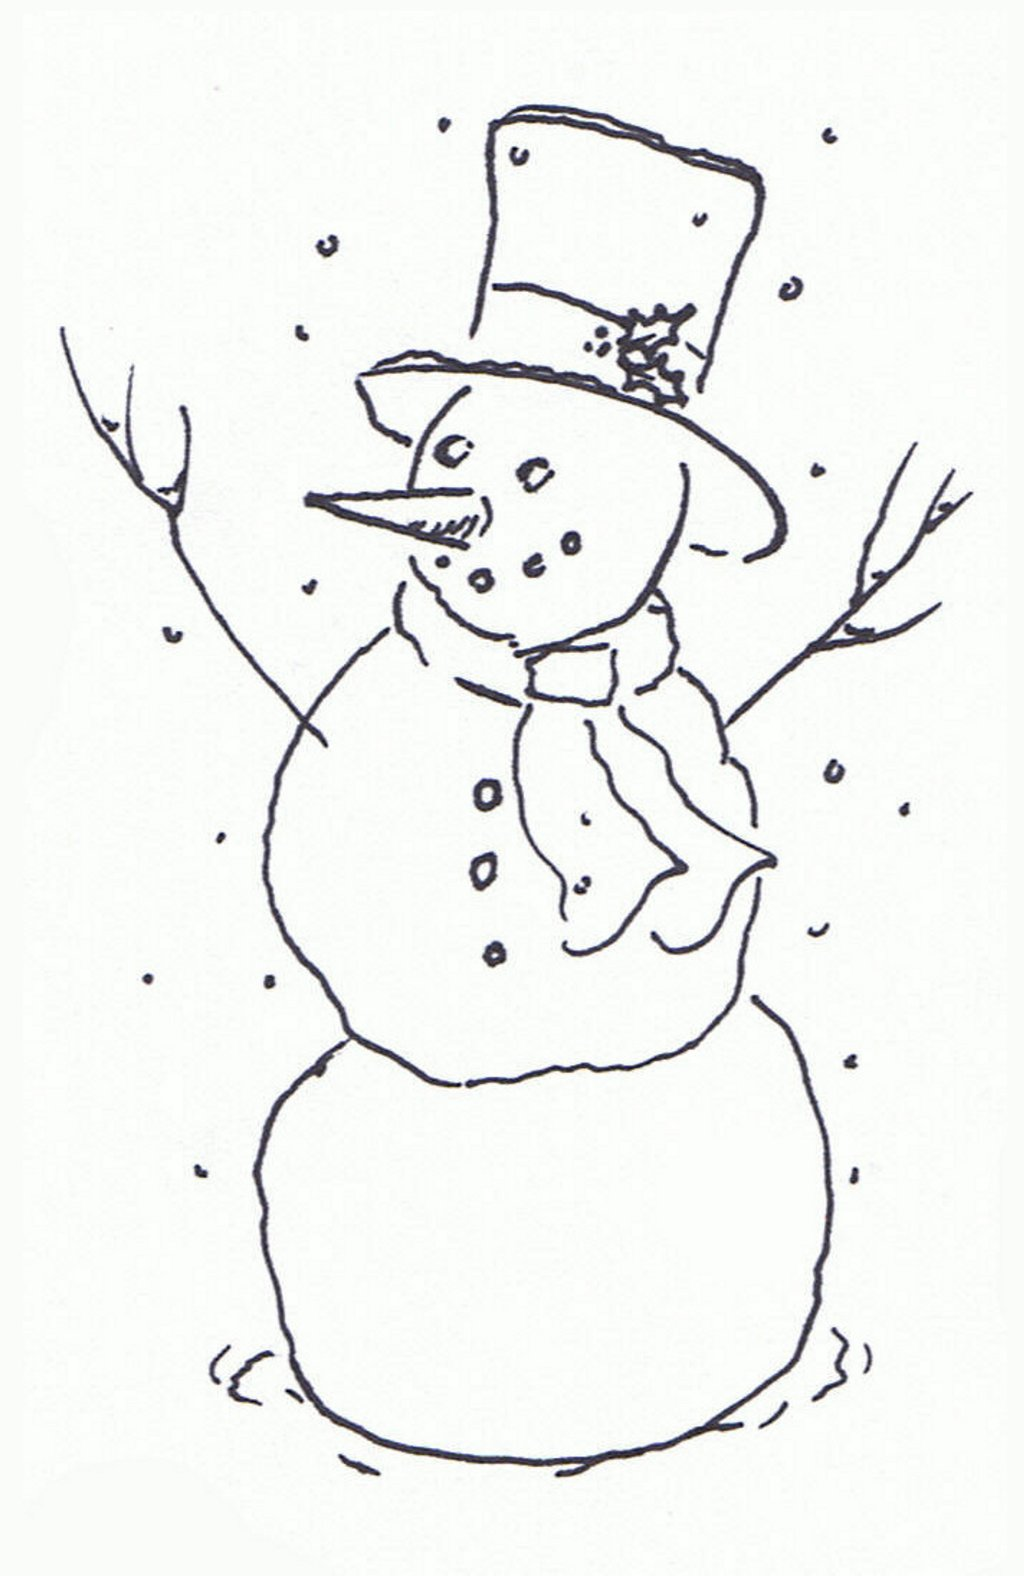 Snowman Black And White Christmas Gift Clipart - Clipart Kid